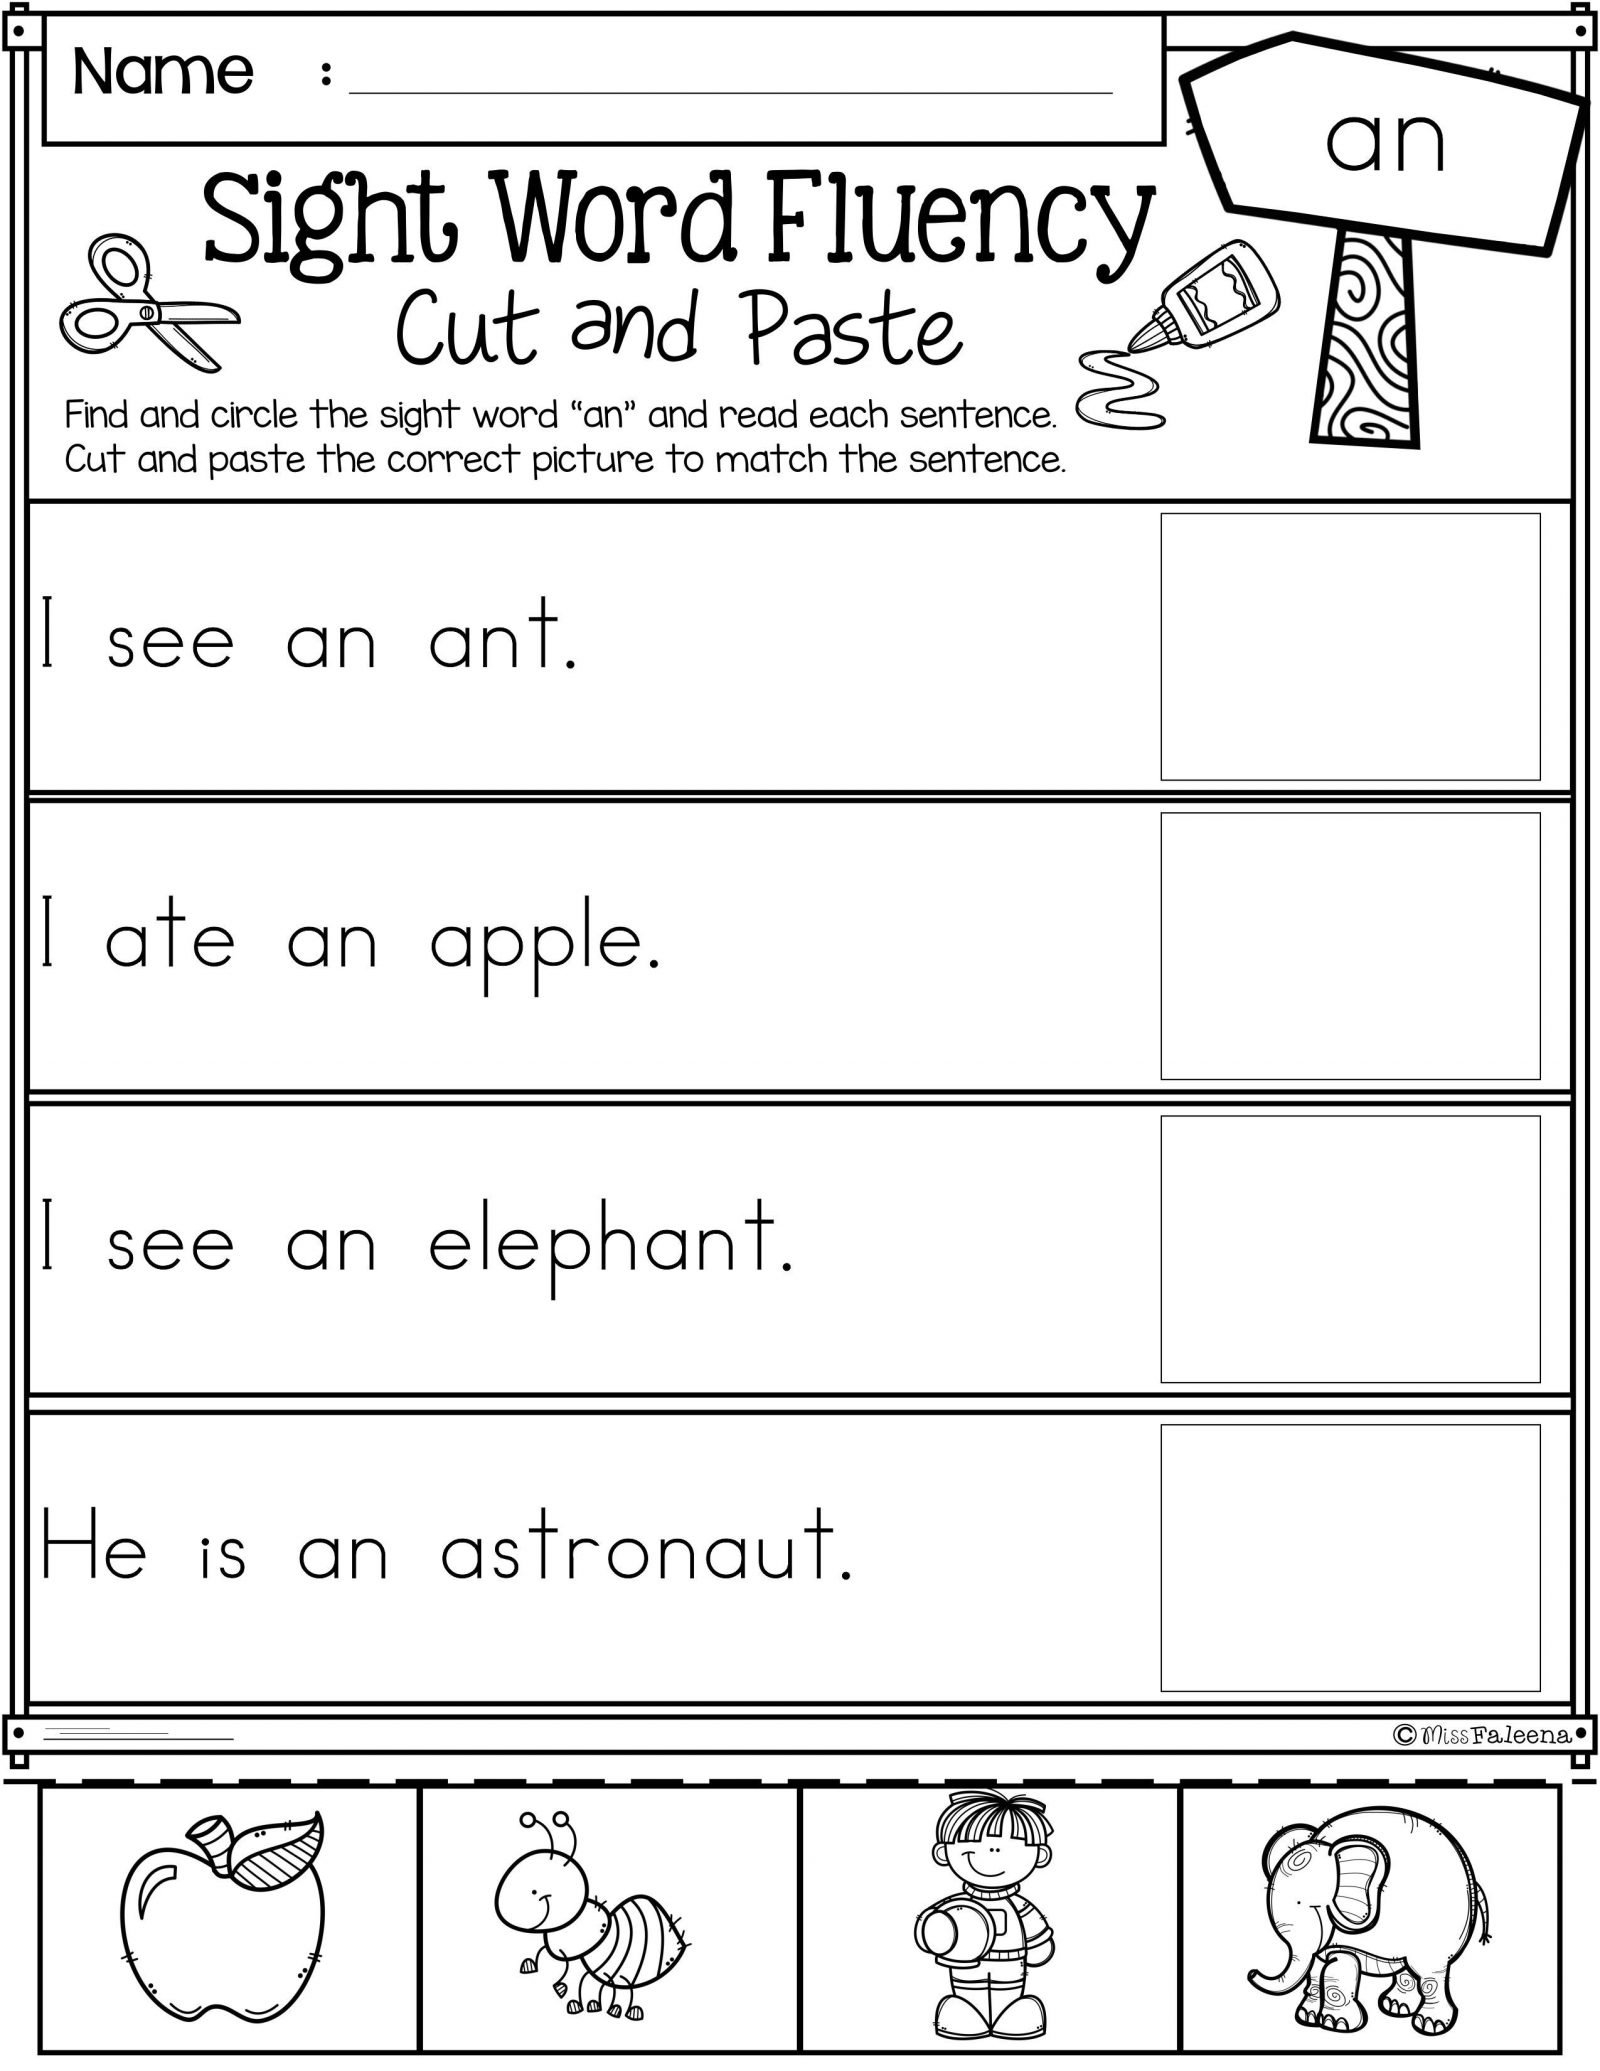 038 Sight Word Fluency Cut And Paste First Grade Teaching For Cut And Paste Worksheets For Kindergarten